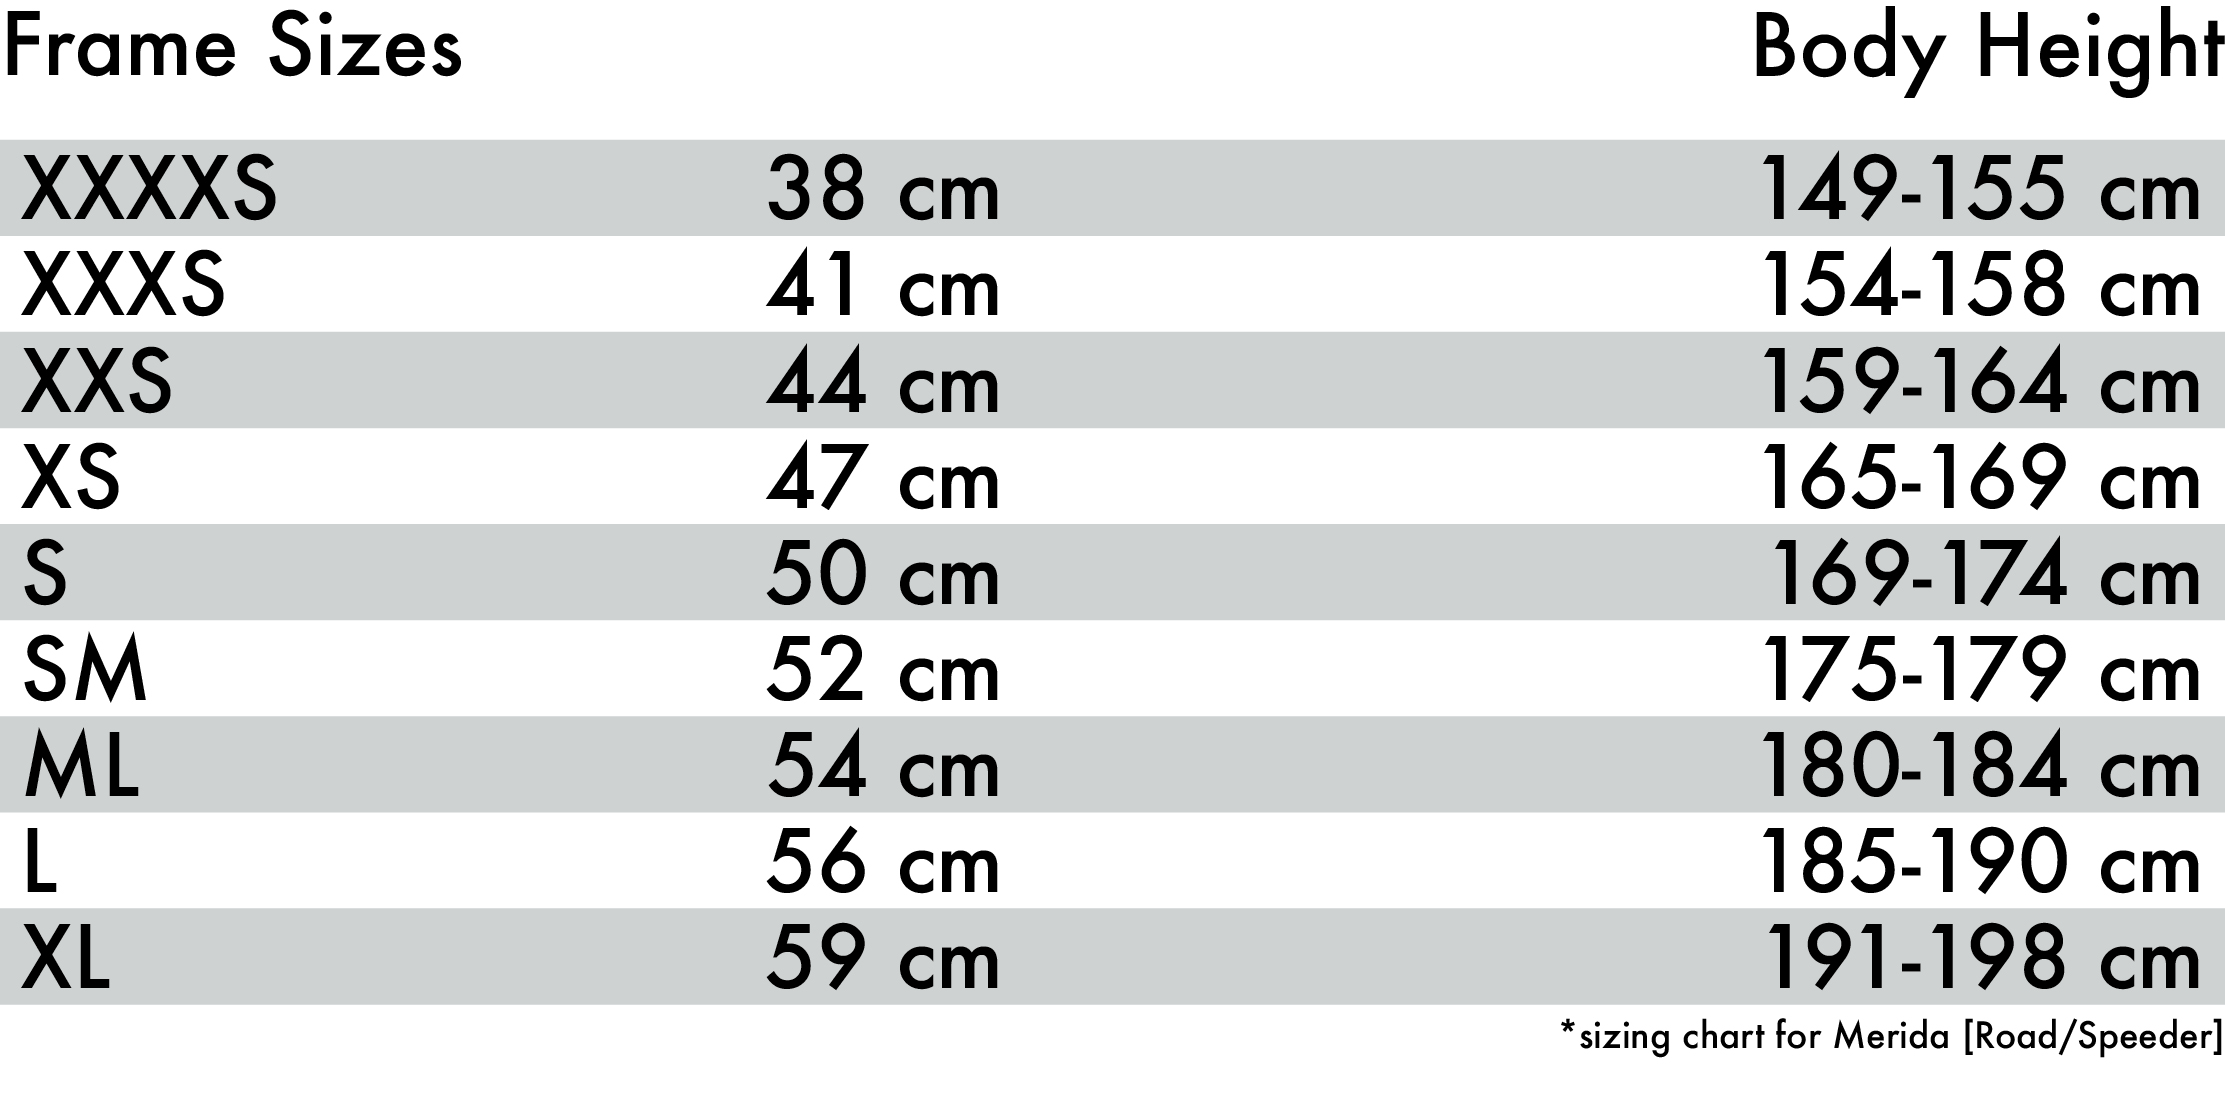 HL Bike Sizing Chart_Merida Road & Speeder.jpg